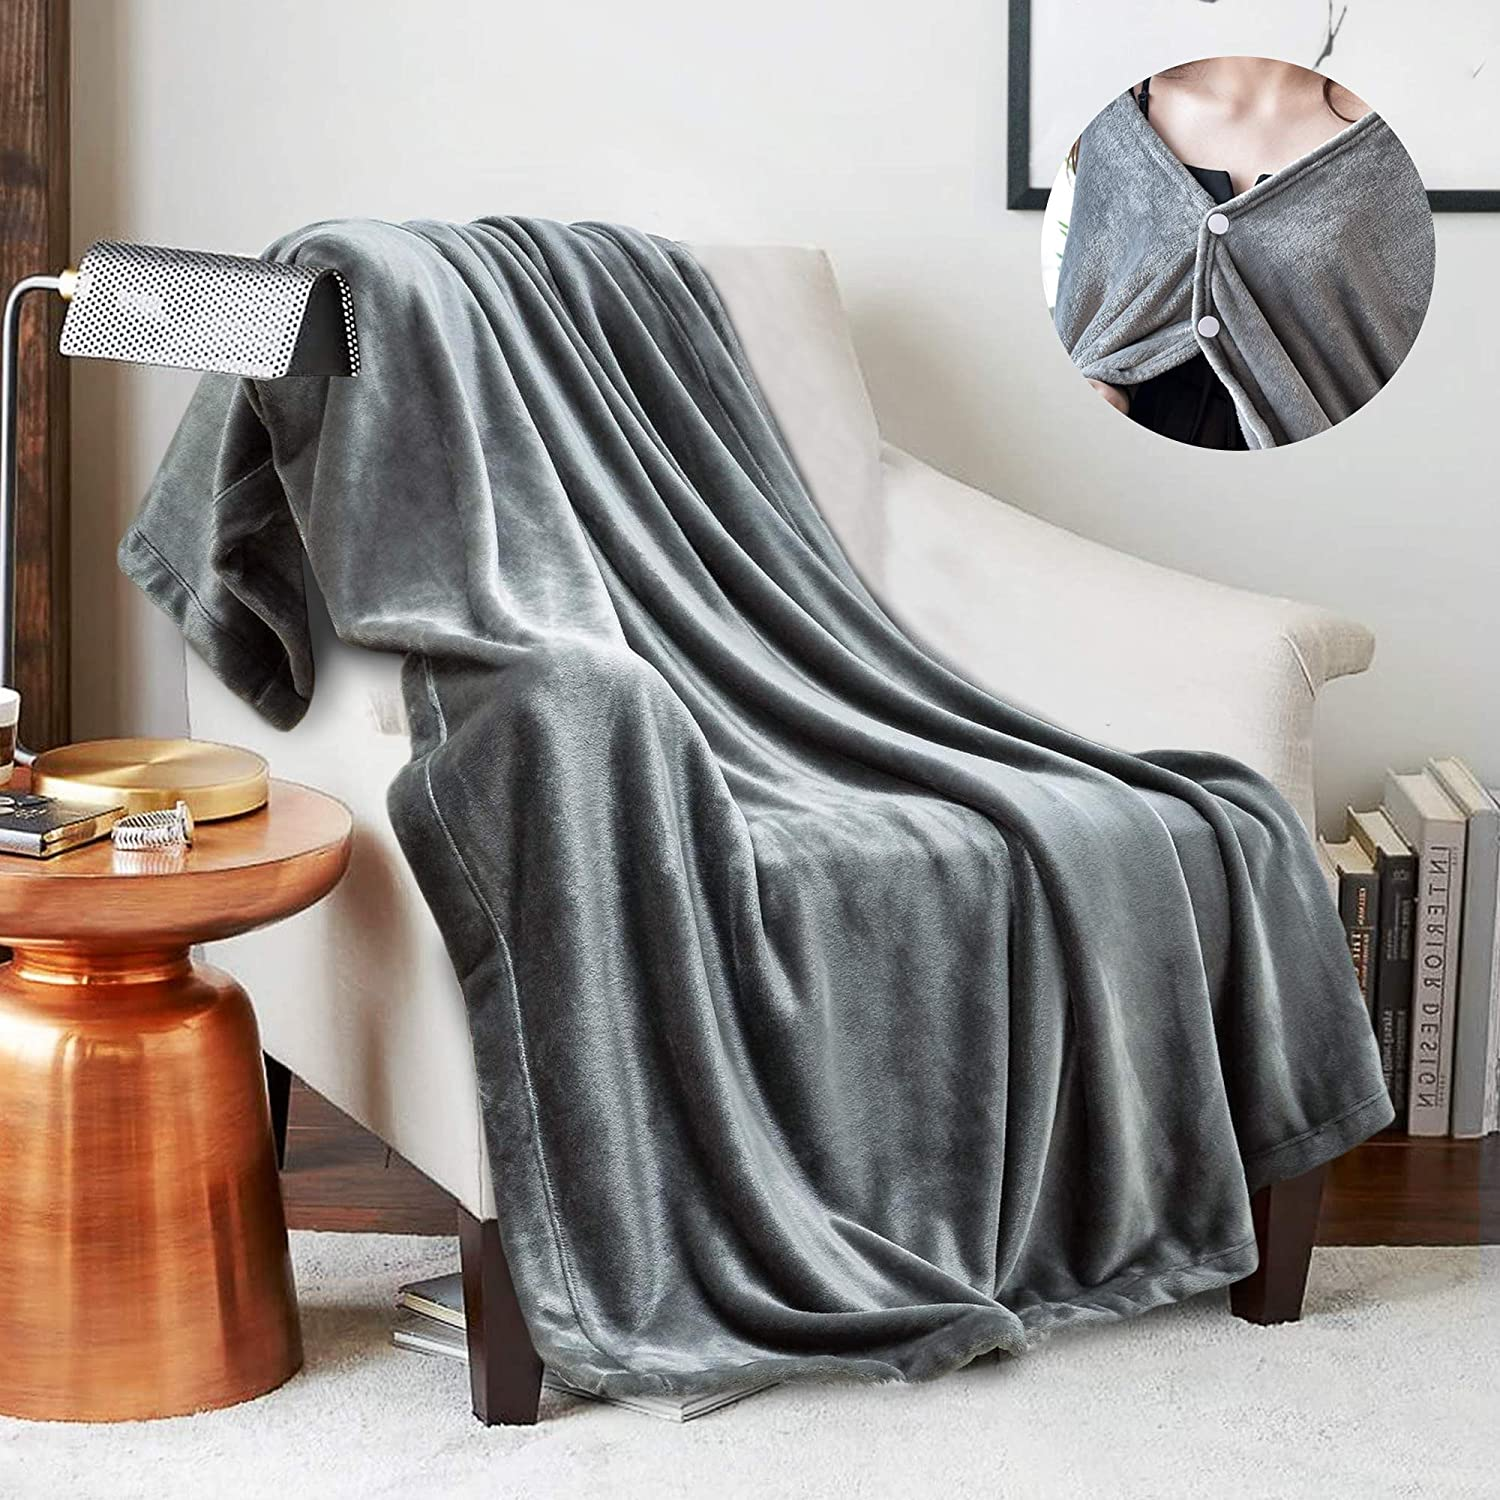 """JS HOME Throw Size Wearable Fleece Blanket Throw, Super Soft and Cozy Blanket for All Season, Luxury Lightweight Plush Warm Blanket, Flannel Microfiber Blankets for Couch, Sofa, Bed, Grey, 50""""x 60"""" : Home & Kitchen"""